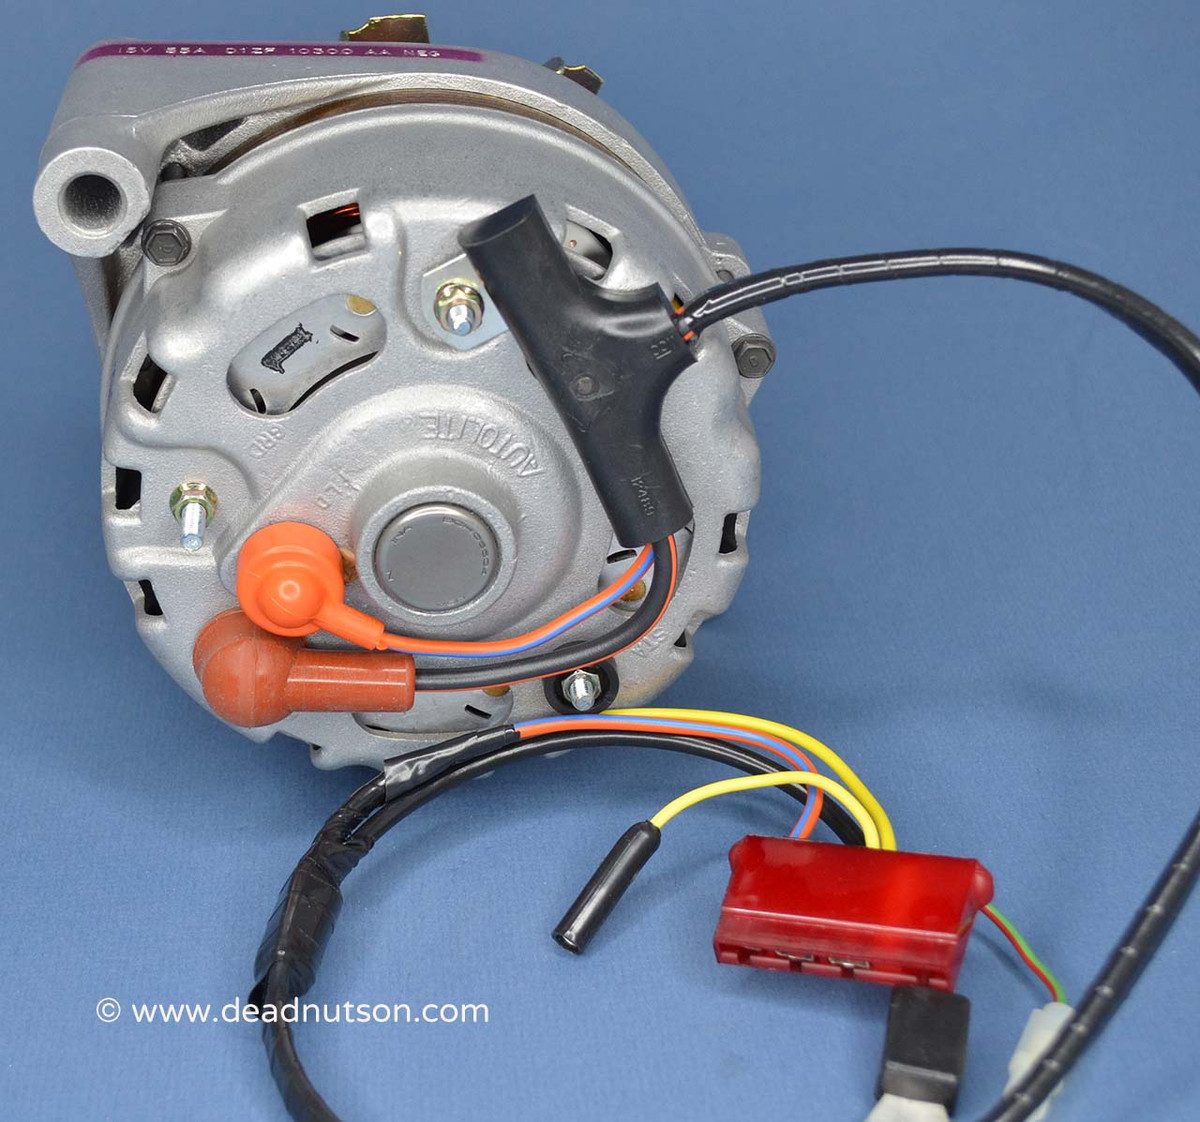 Wiring Harness Installed - Electrical Wiring Diagram Guide on